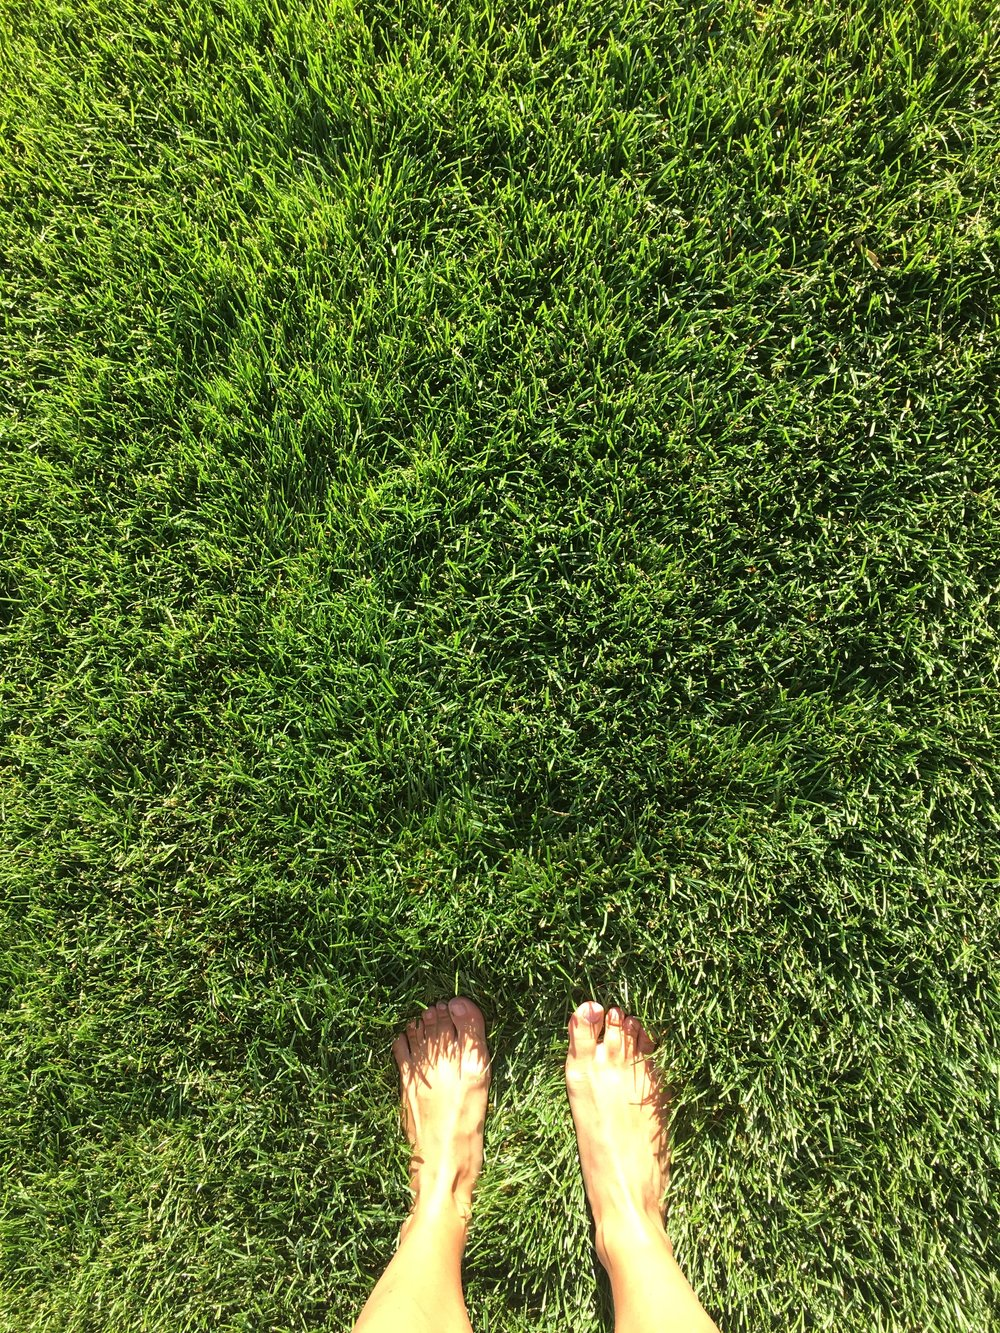 toes-in-grass.jpg